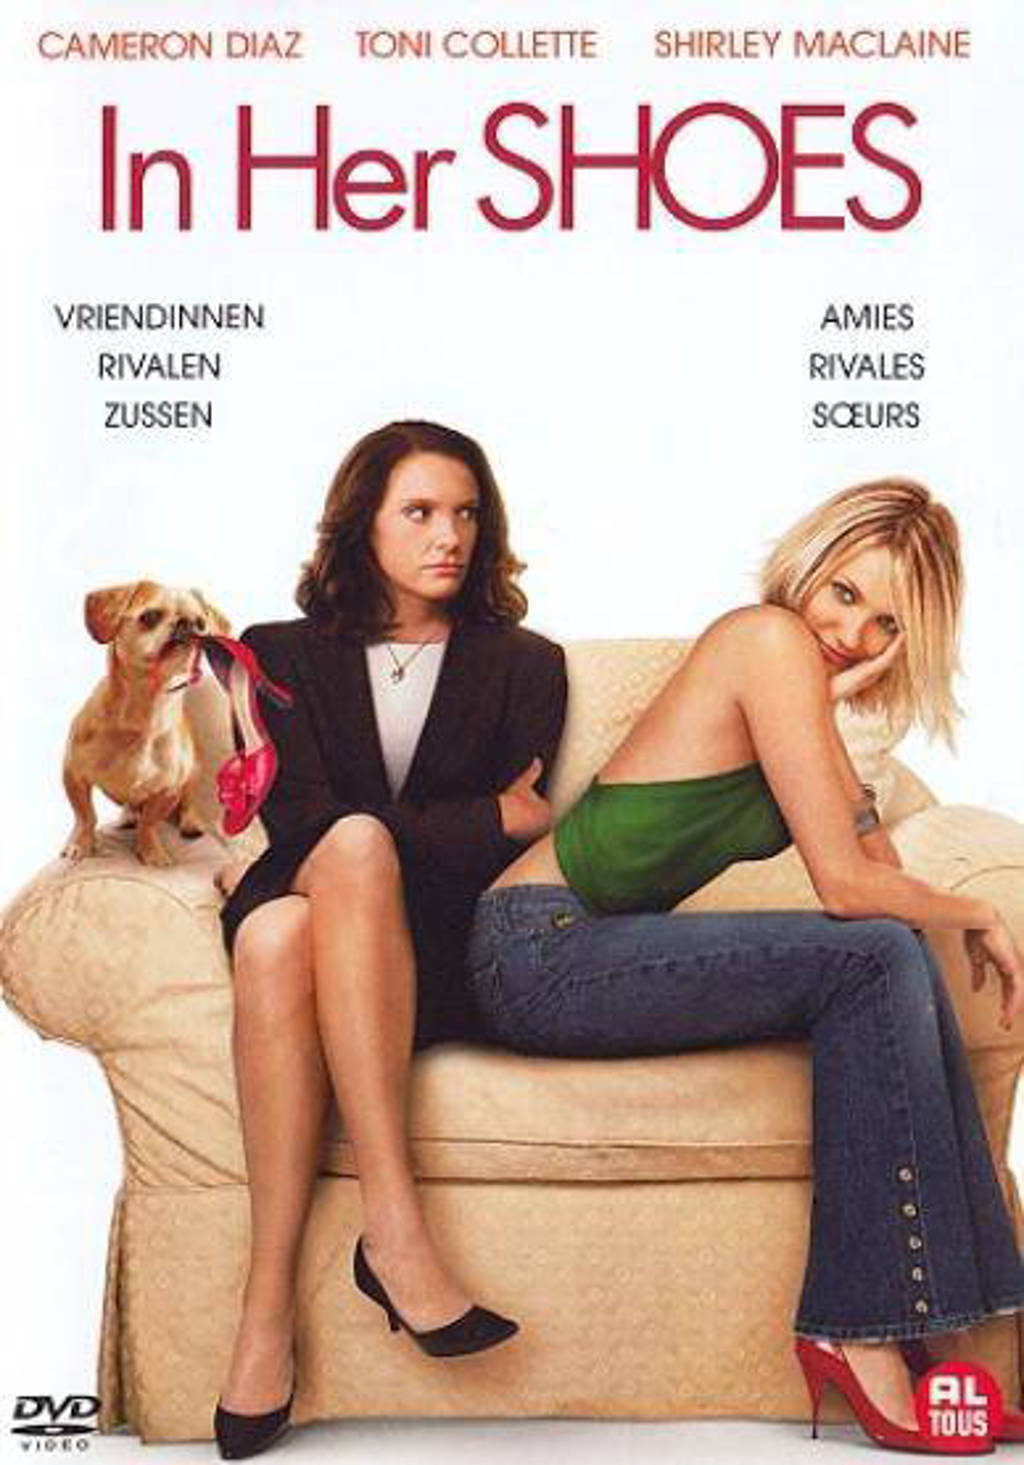 In her shoes (DVD)